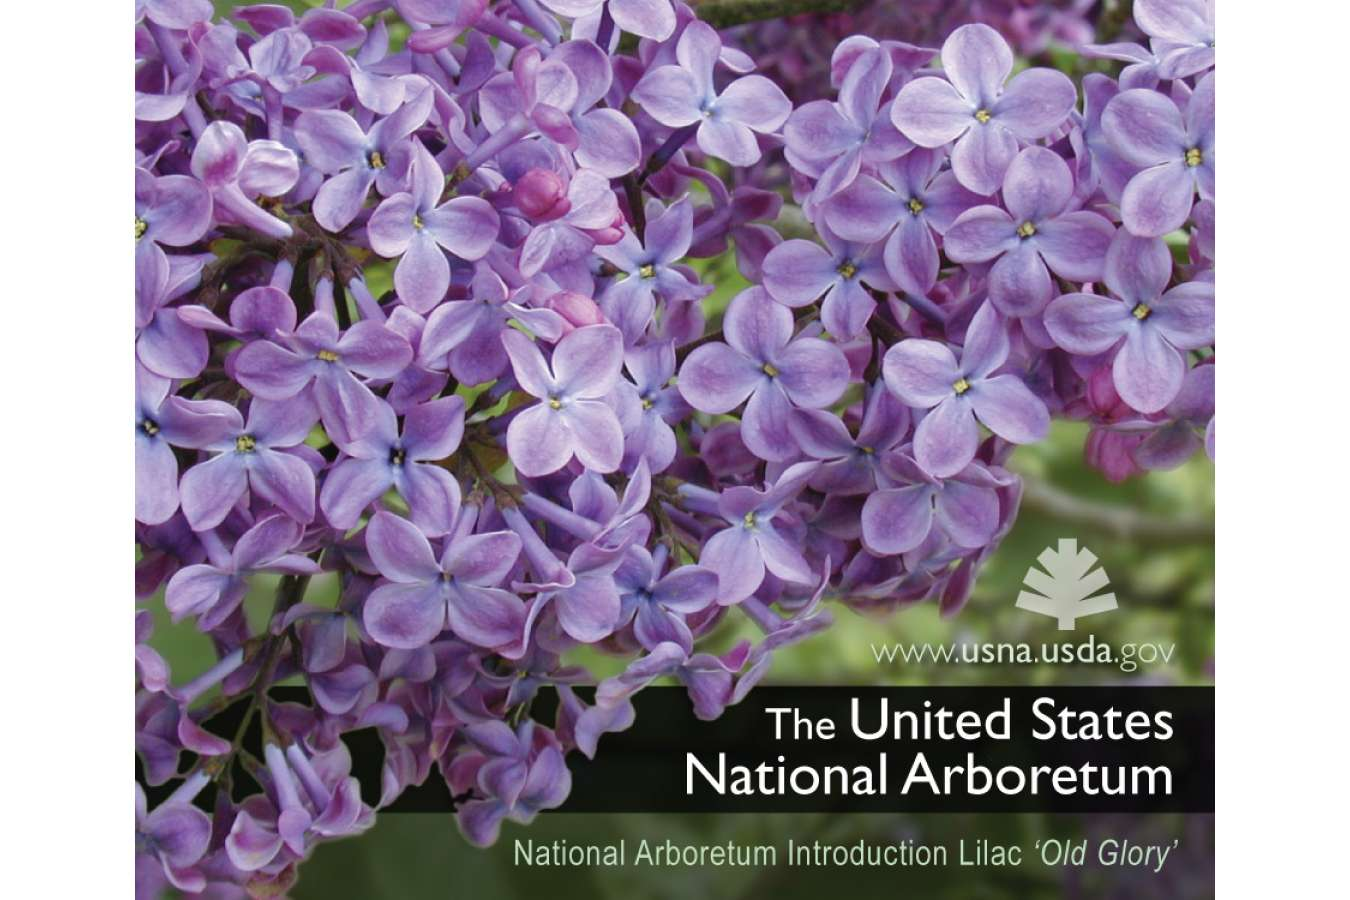 Arbor 5MAG  : US Arboretum Brand refrigerator magnet Promo Gift for Visitors